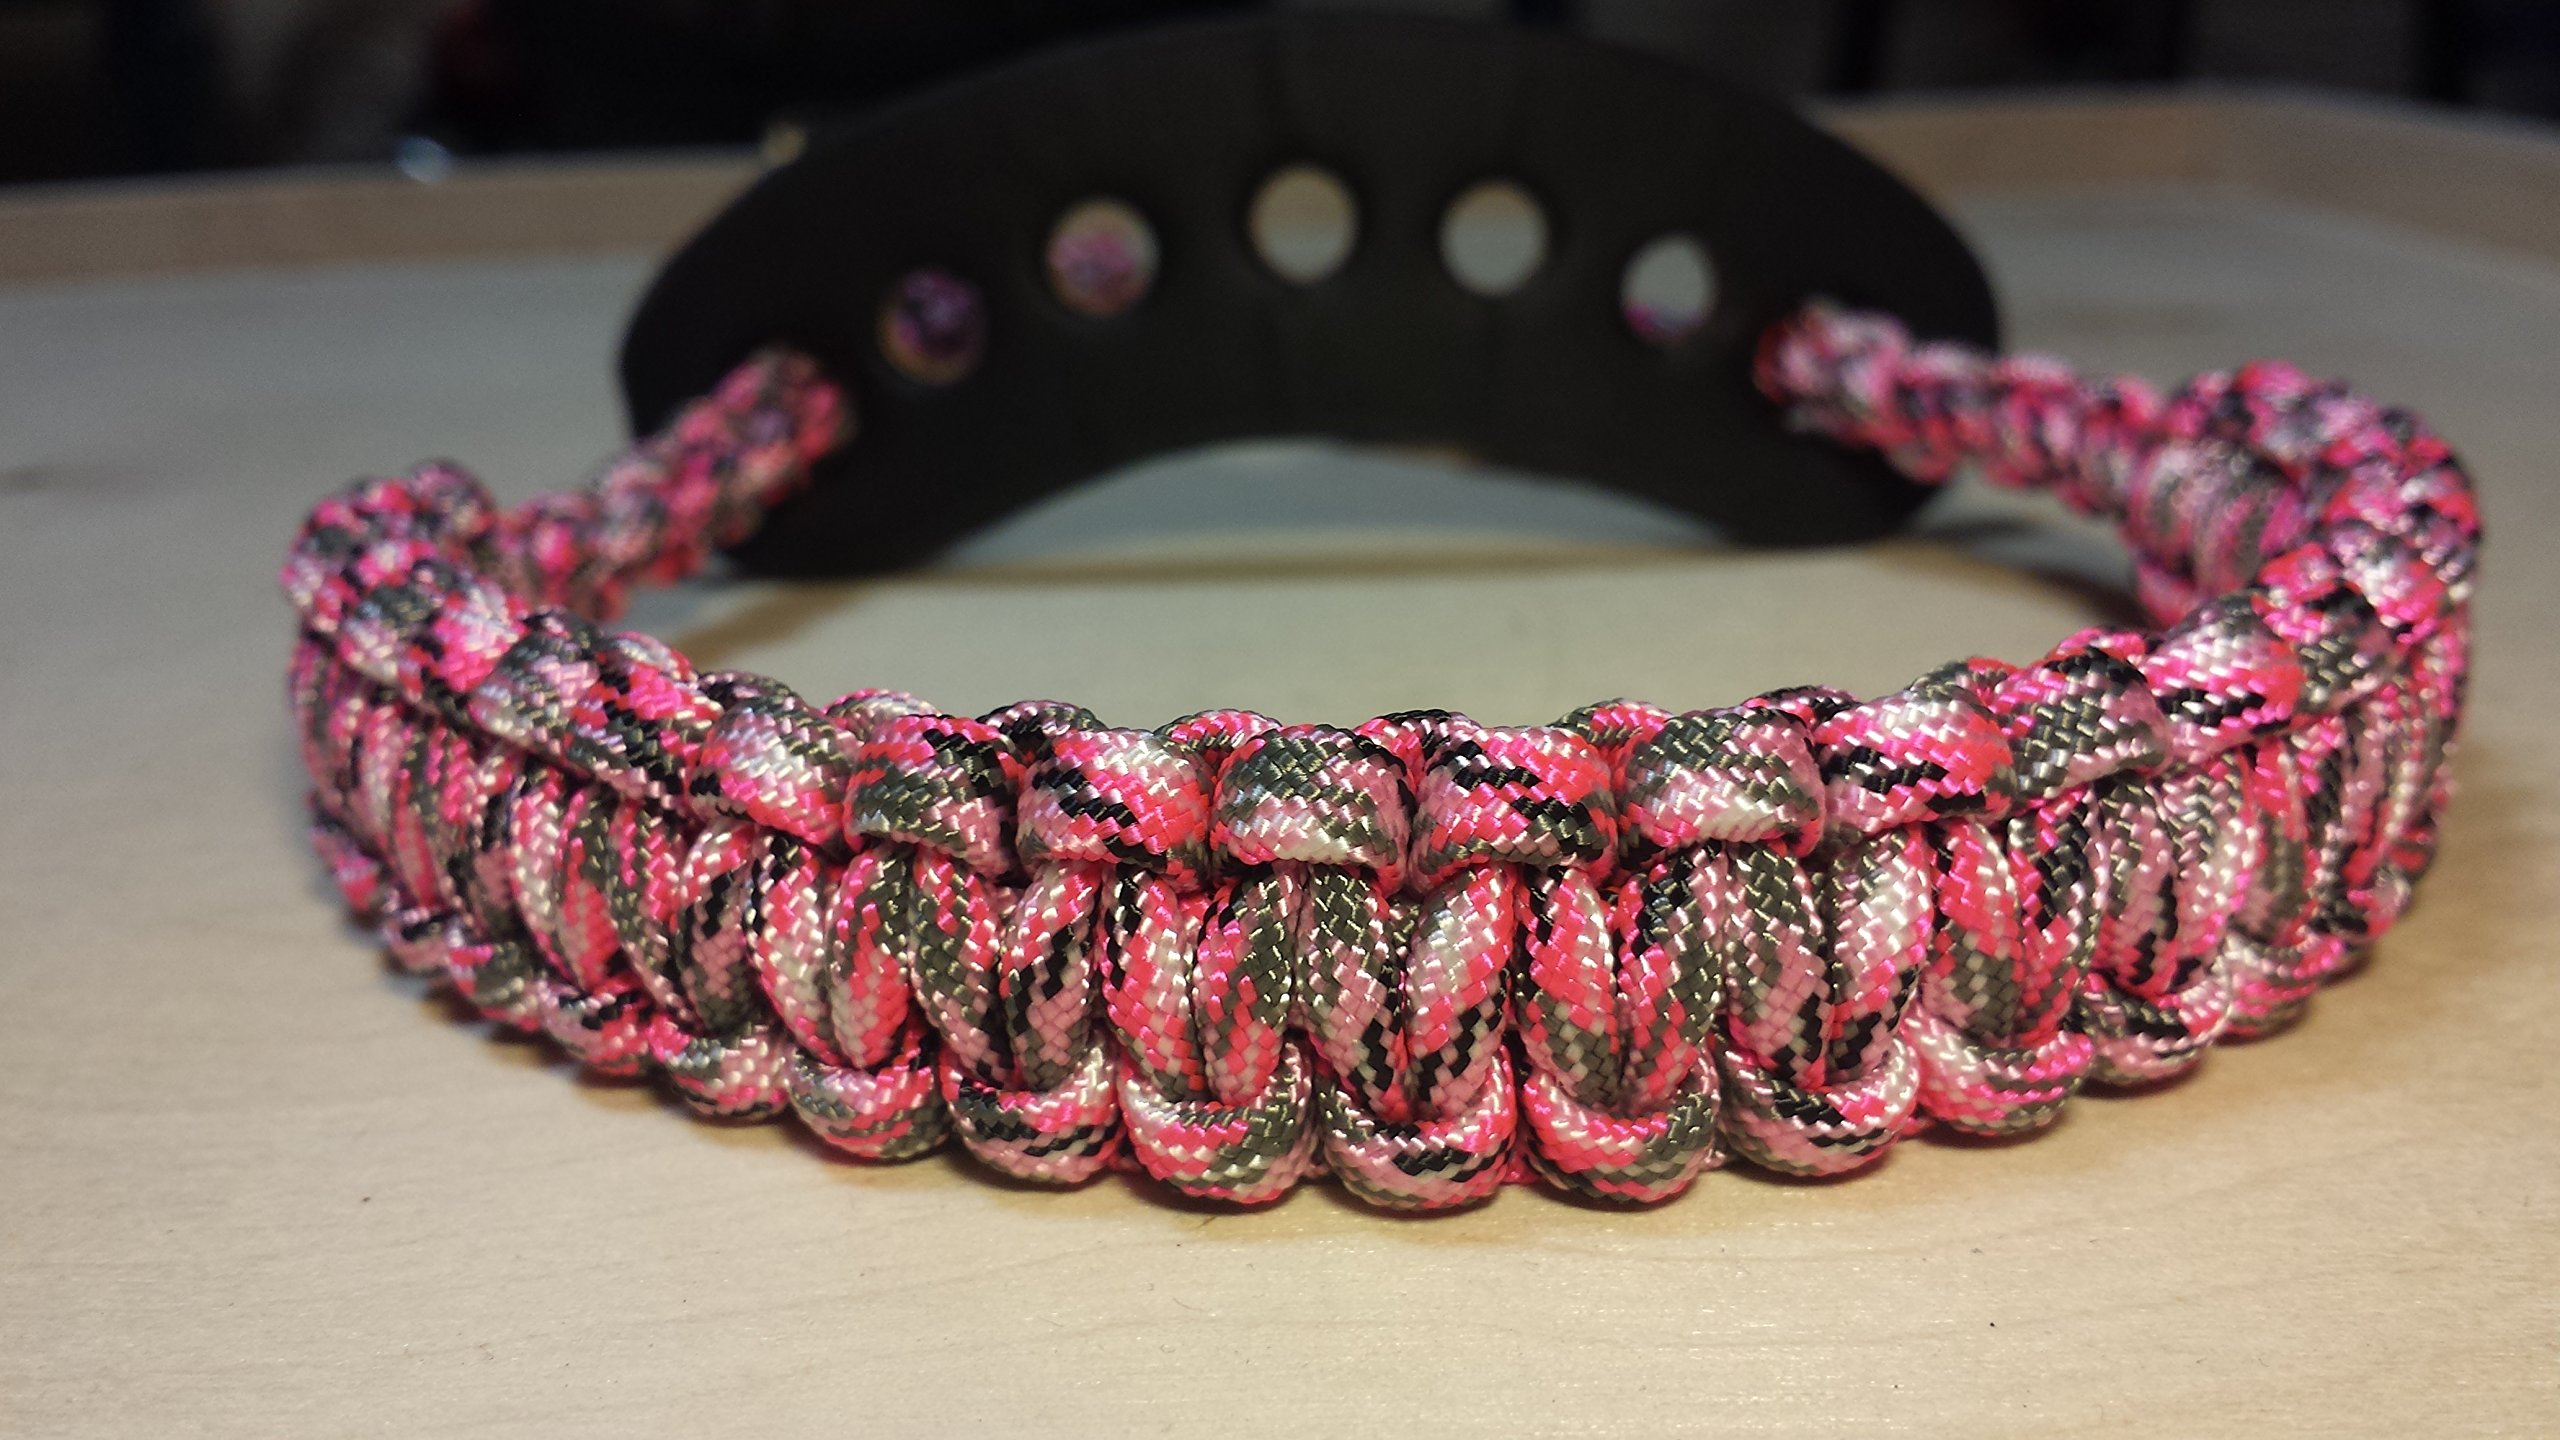 Muddy River Gear Archery Bow Wrist Sling Pretty in Pink Camo